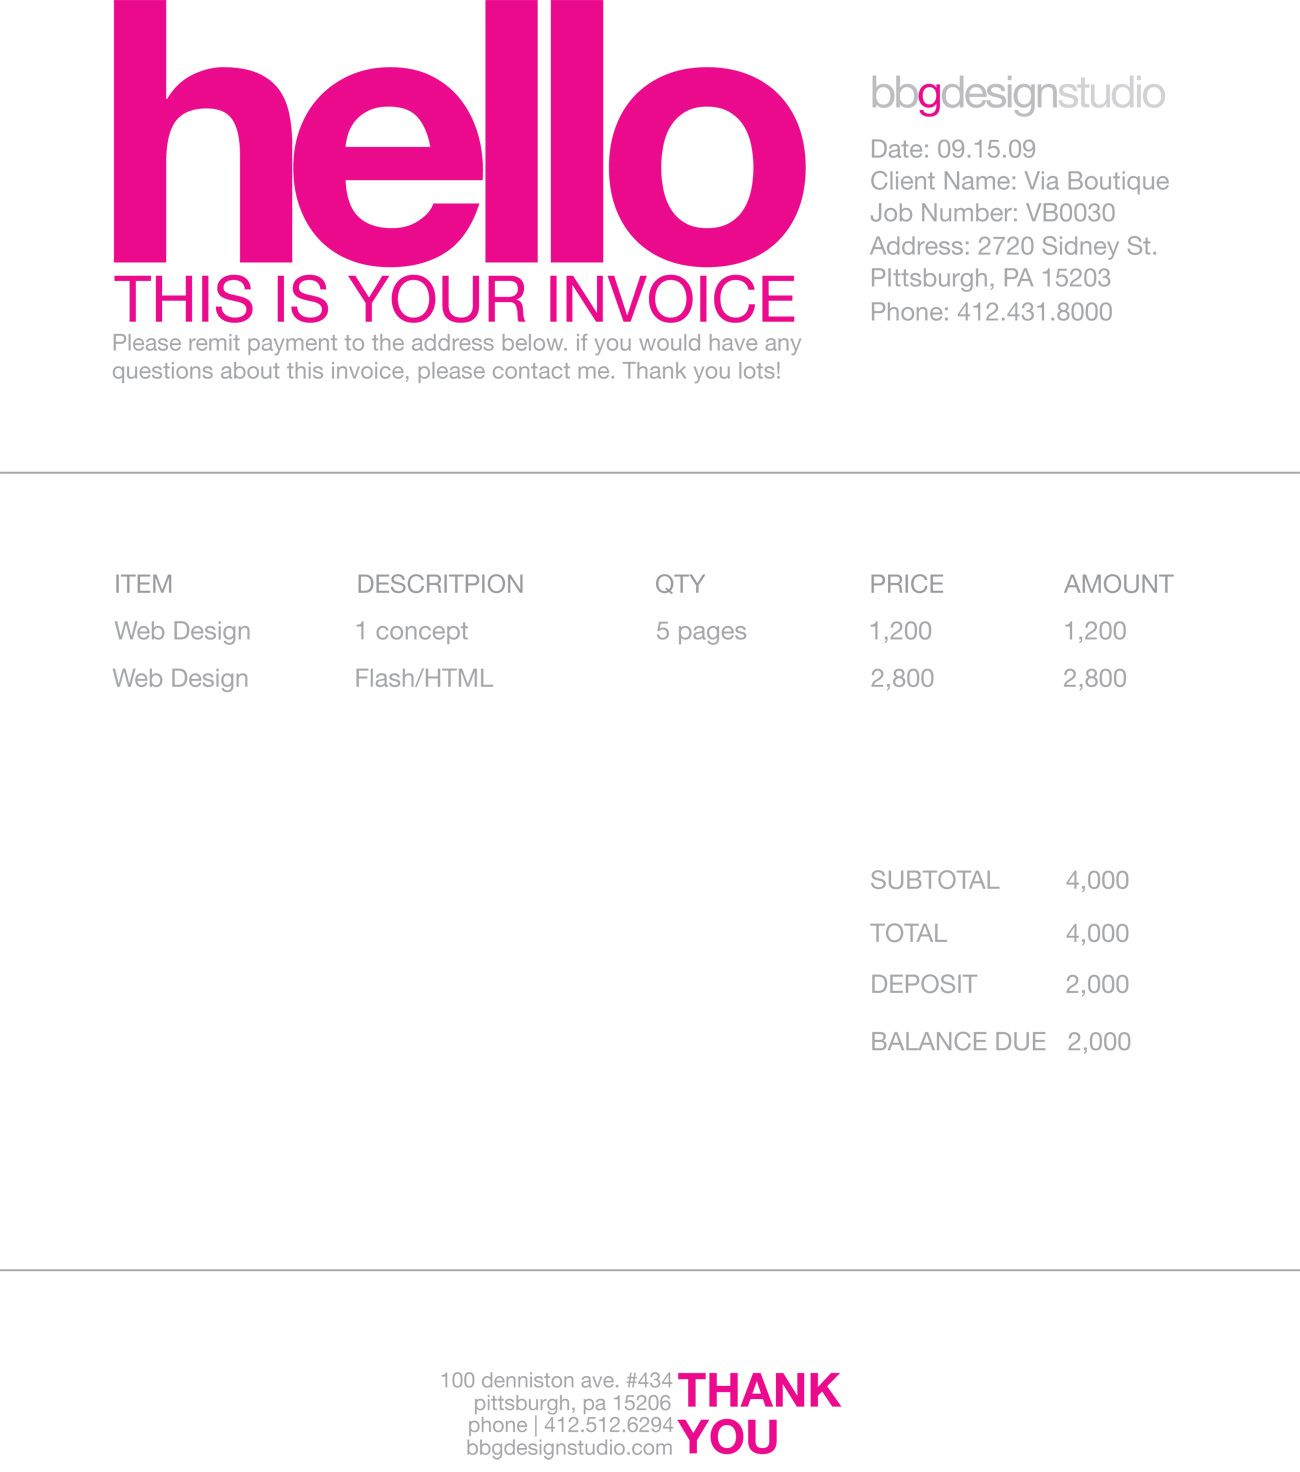 Shopdesignsus  Picturesque  Images About Invoice Design On Pinterest With Fair Receipt Blank Besides All Receiptes Furthermore Certified Return Receipt Requested With Enchanting Free Rental Receipt Also Printed Receipt In Addition Osceola County Business Tax Receipt And Certified Mail Receipts As Well As I Confirm Receipt Additionally Pressure Cooker Receipts From Pinterestcom With Shopdesignsus  Fair  Images About Invoice Design On Pinterest With Enchanting Receipt Blank Besides All Receiptes Furthermore Certified Return Receipt Requested And Picturesque Free Rental Receipt Also Printed Receipt In Addition Osceola County Business Tax Receipt From Pinterestcom